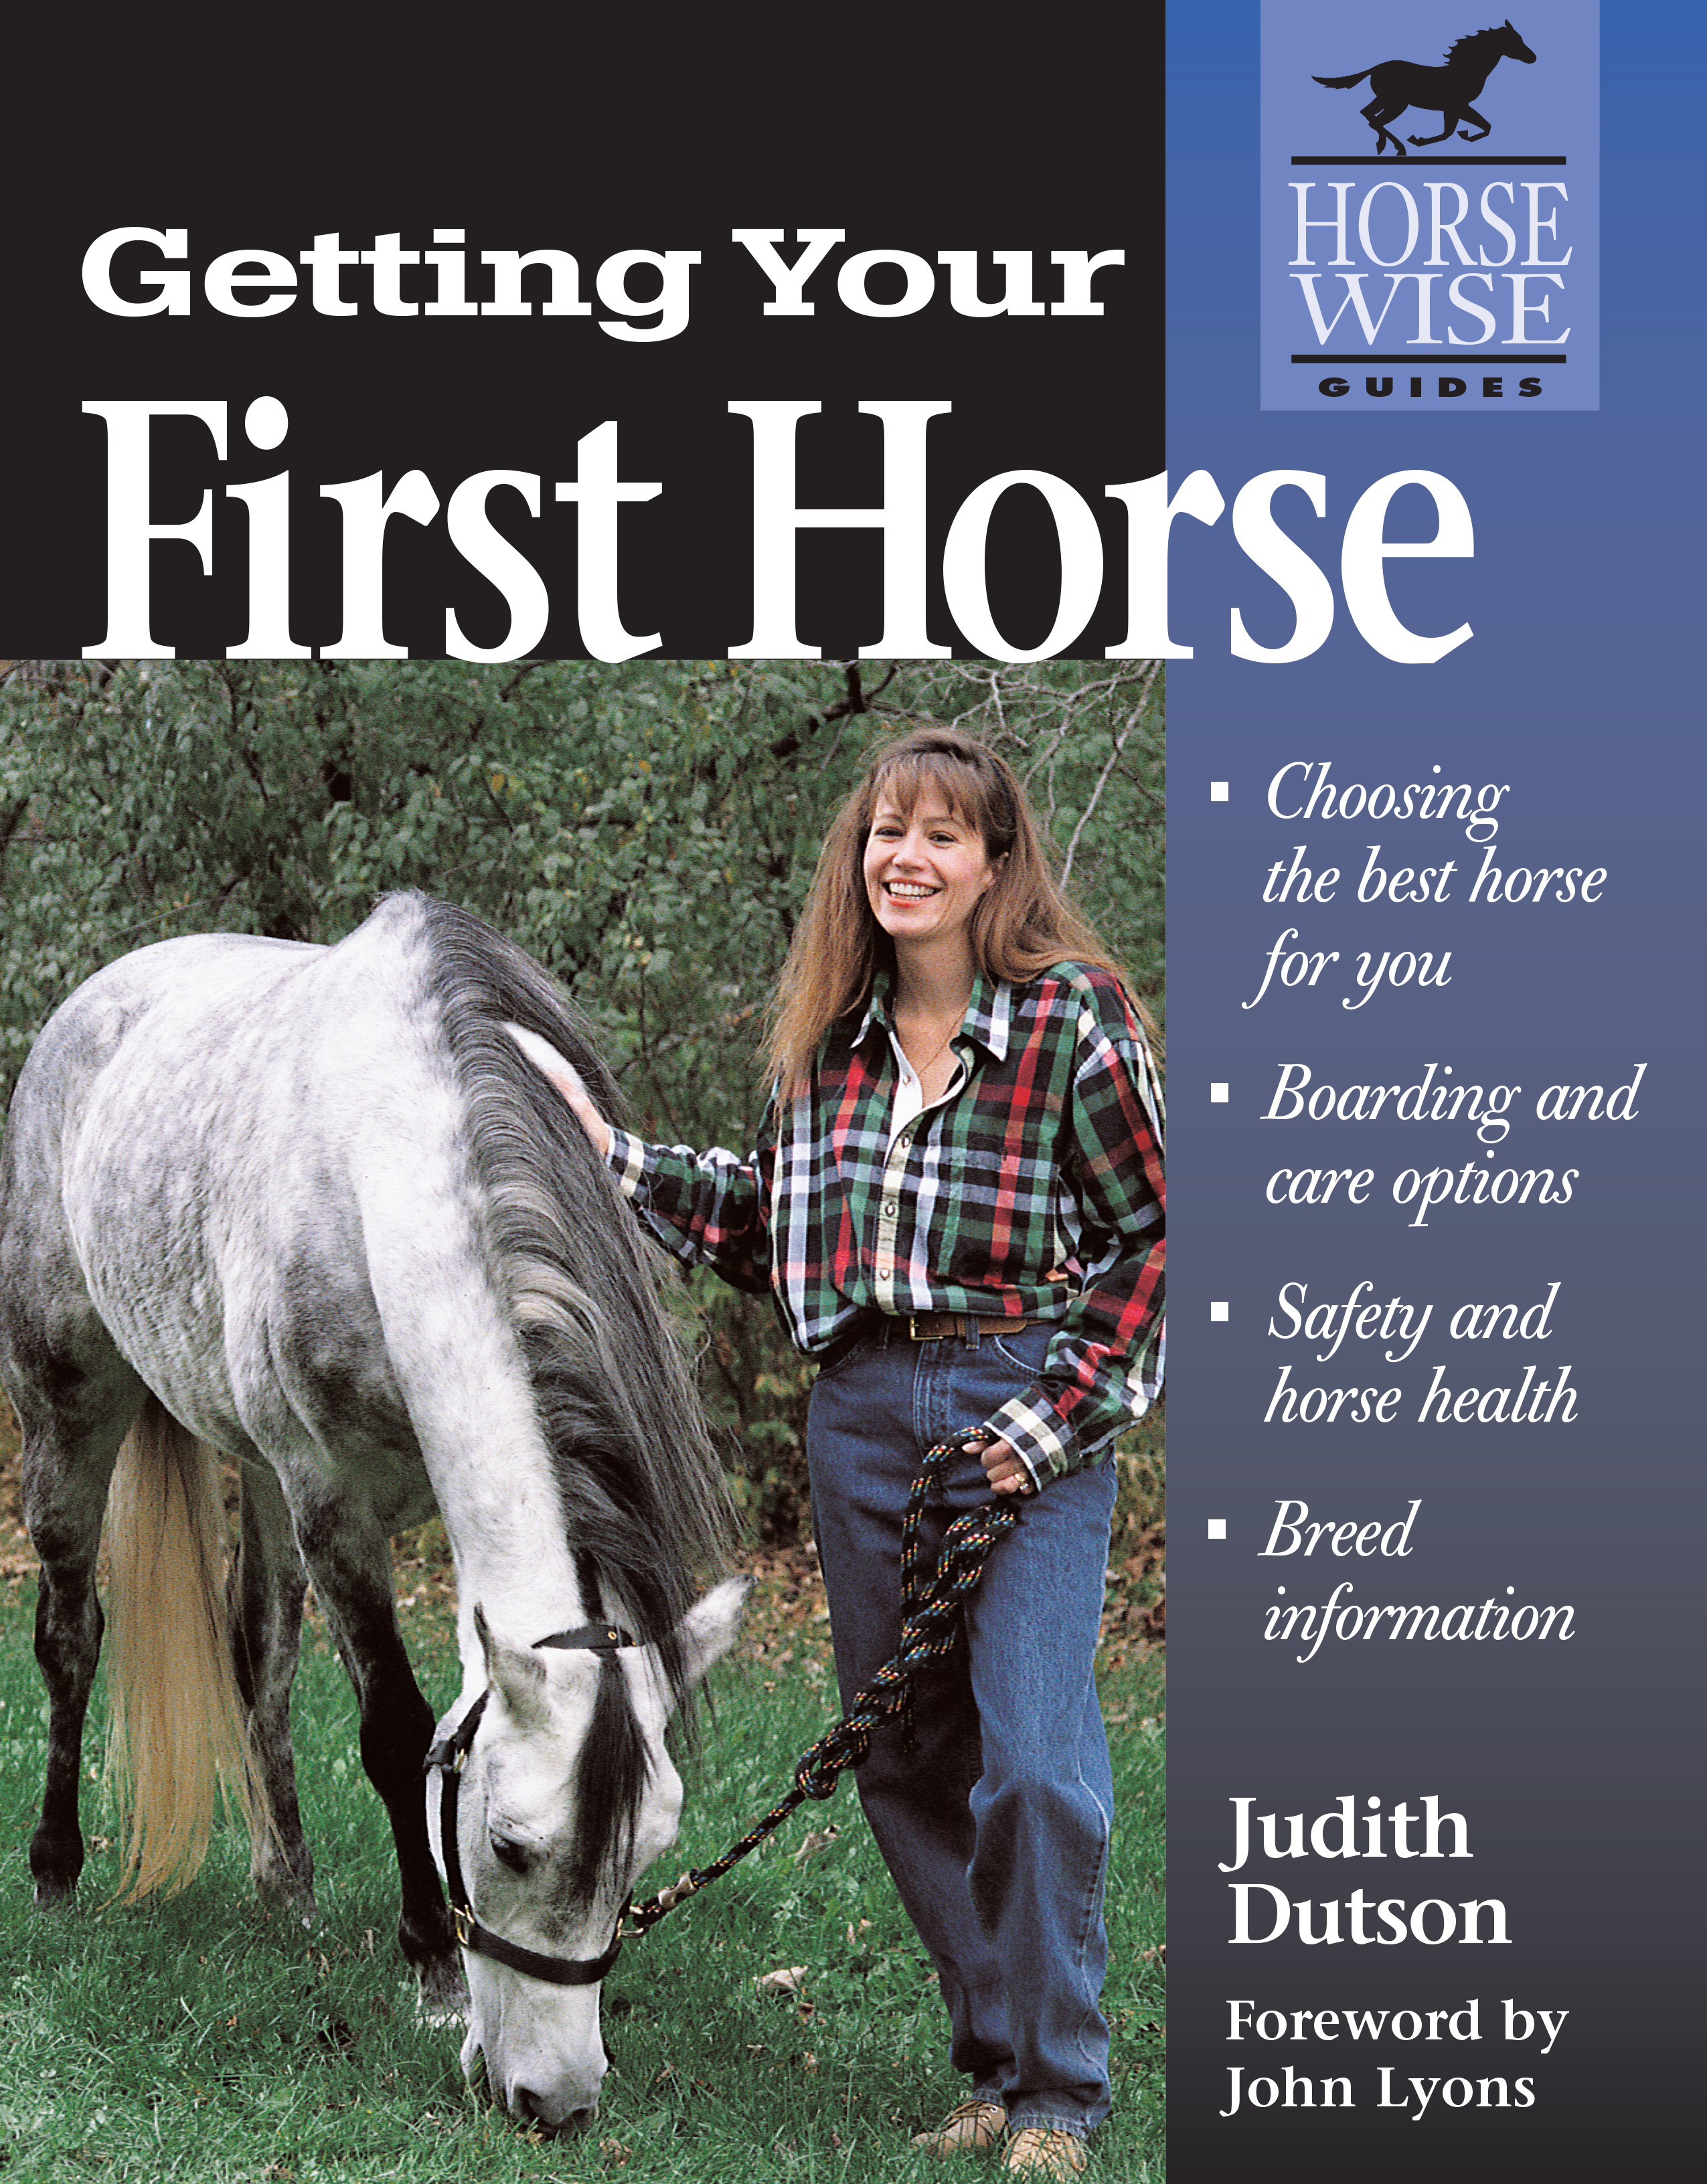 Getting Your First Horse  - Judith Dutson